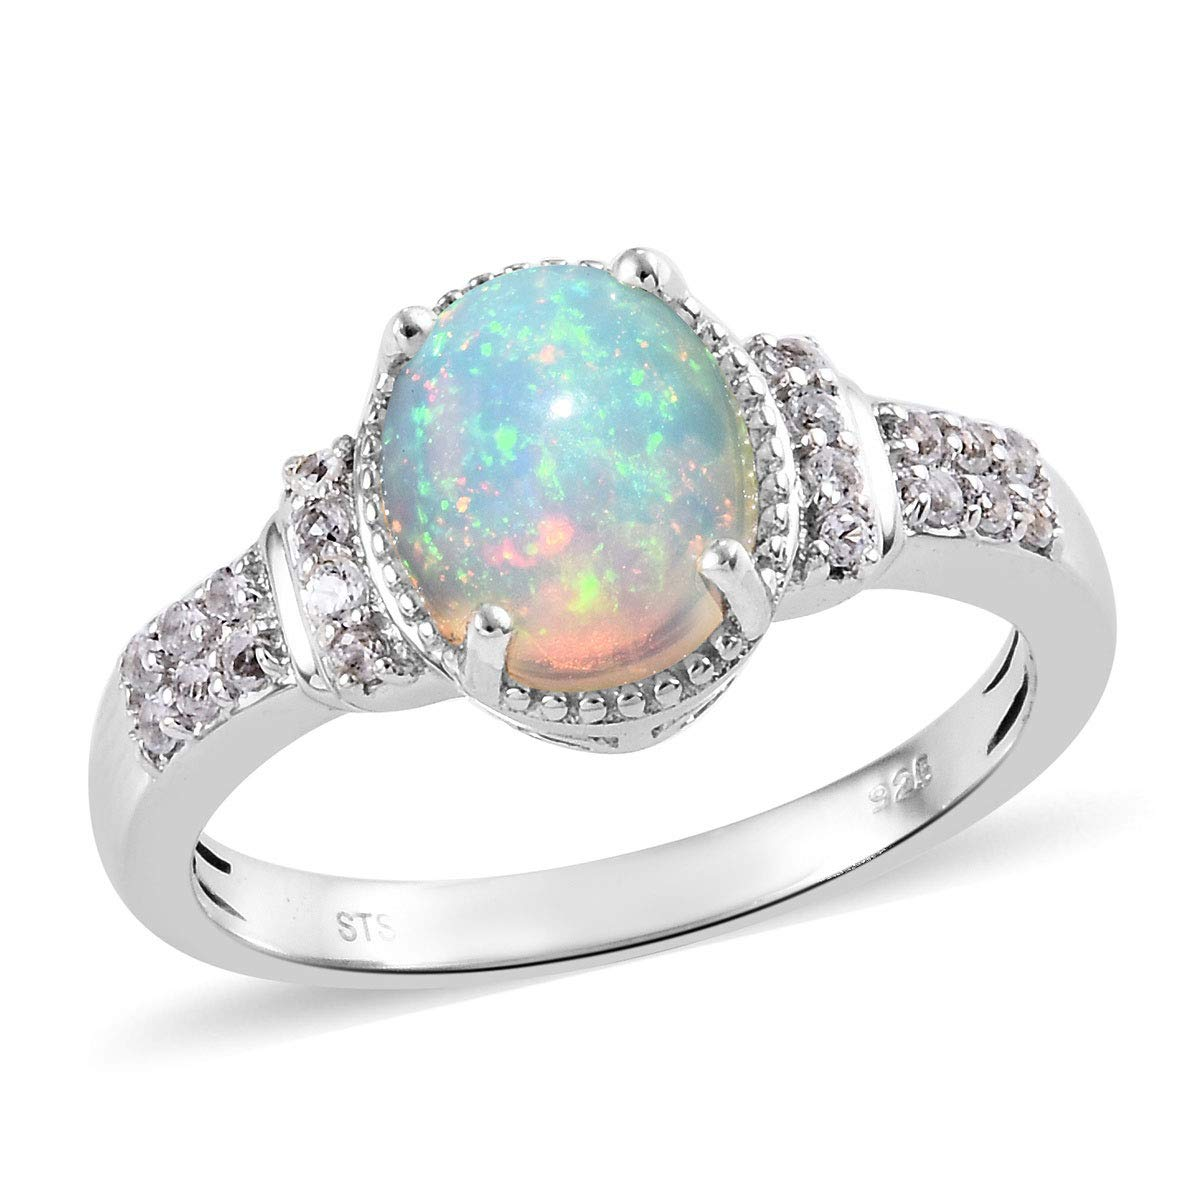 925 Sterling Silver Oval Fire Opal White Topaz Platinum Plated Solitaire Promise Statement Engagement Anniversary Ring for Women Size 10 Mothers Day Gifts